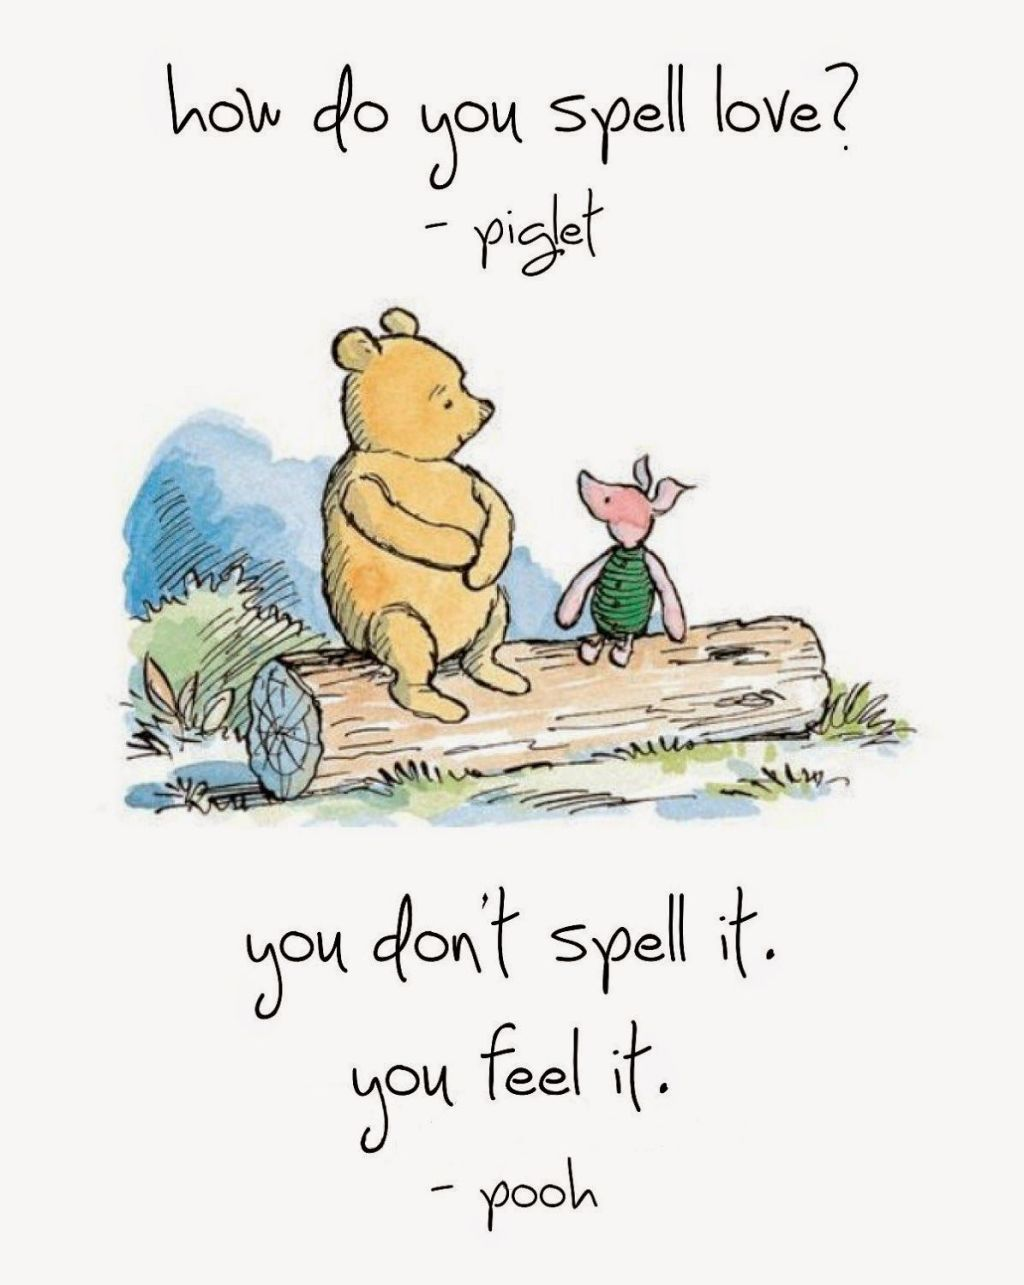 Winnie The Pooh Quotes About Life Winnie The Pooh Quotes To Guide You Through Life  Thoughts Poem